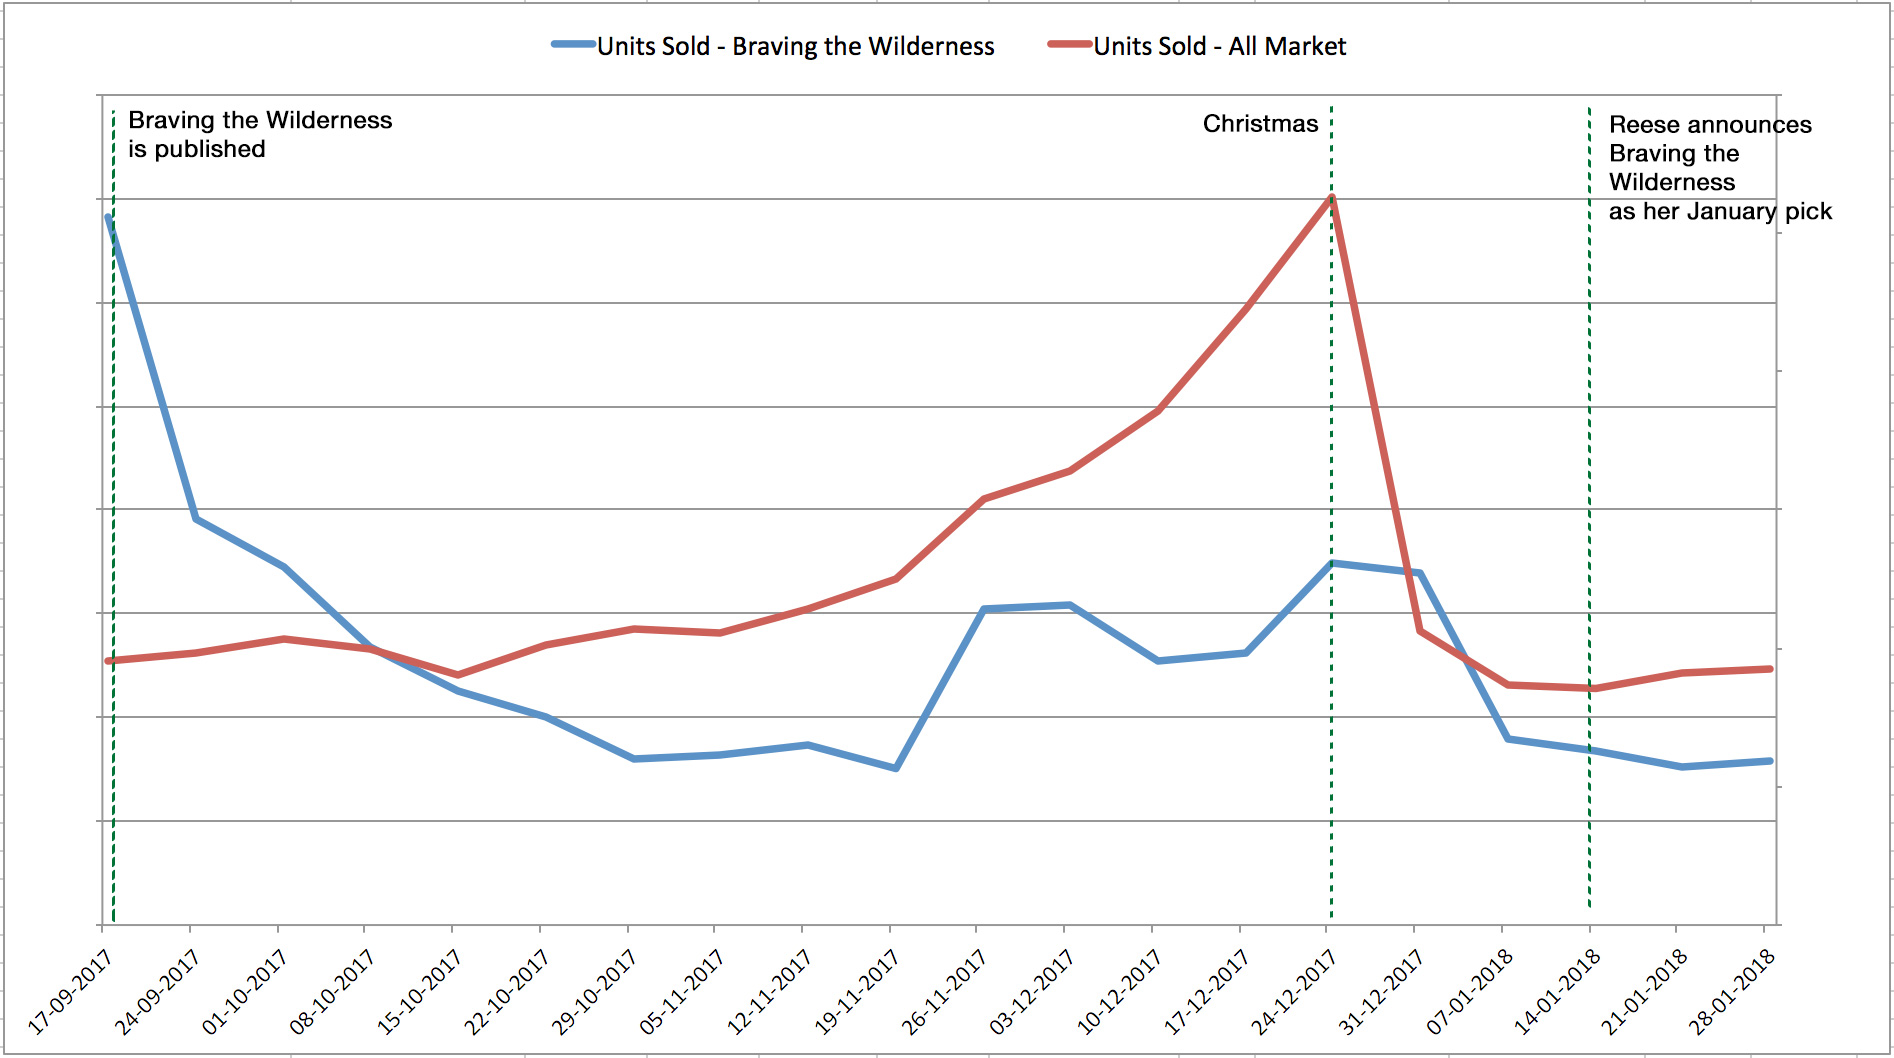 Unit sales for  Braving the Wilderness  by Bréne Brown.